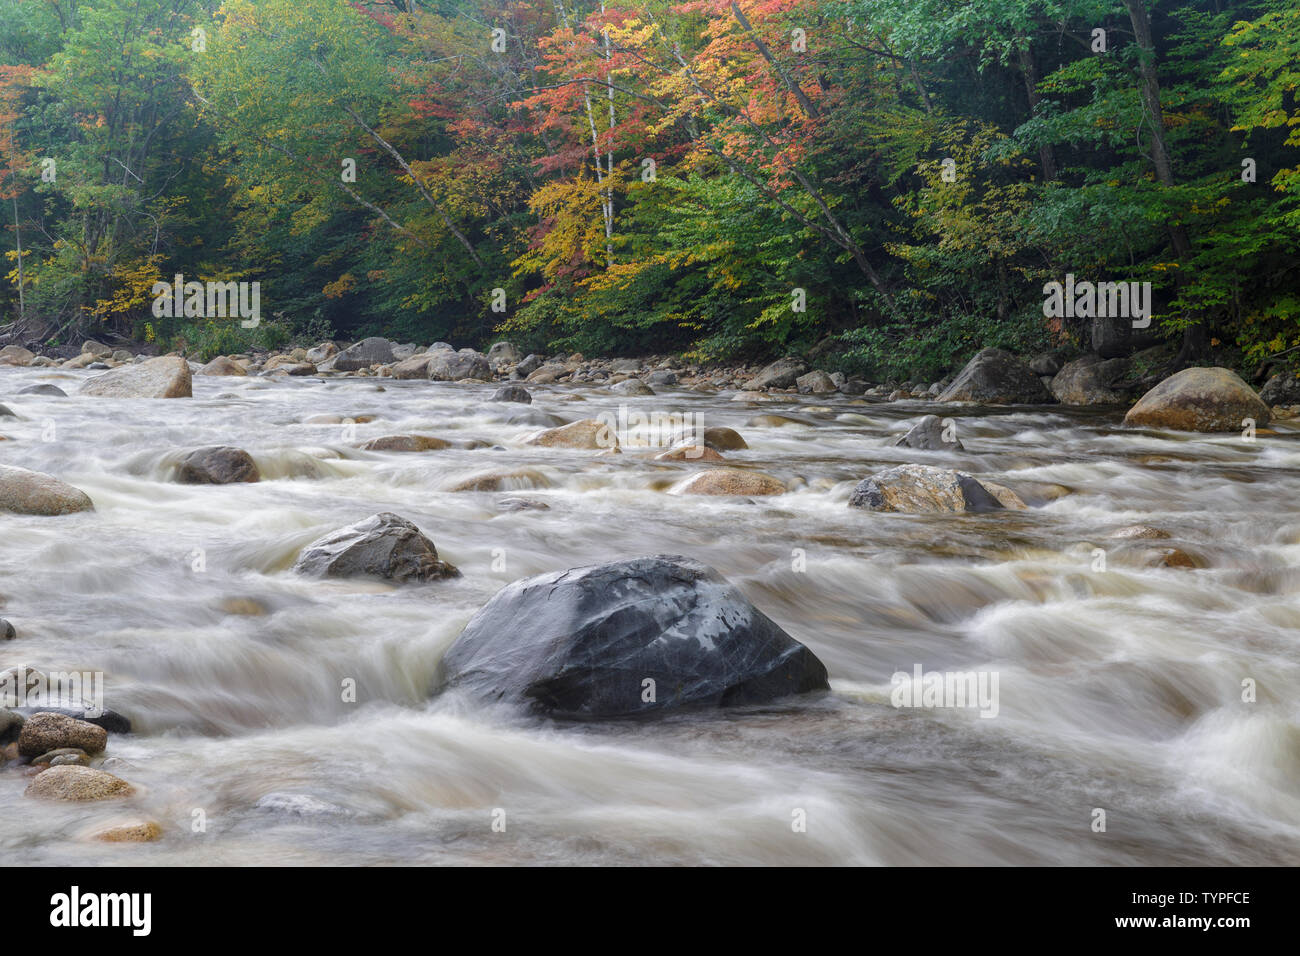 Just North O Stock Photos & Just North O Stock Images - Alamy